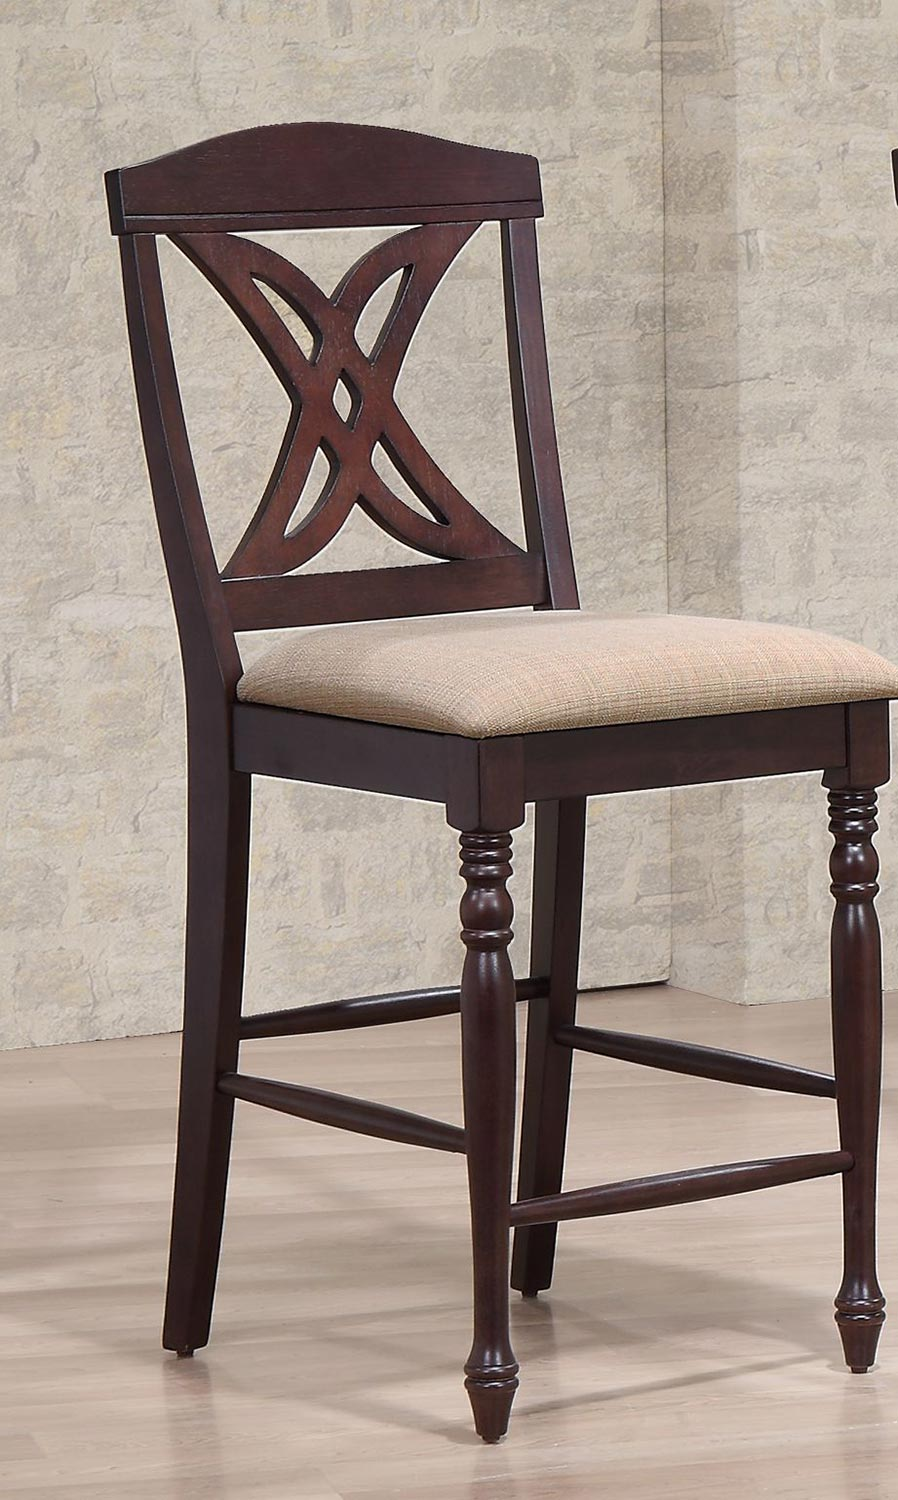 Iconic Furniture Butterfly Back 24-inch Counter Stool Upholstered Seat - Whiskey/Mocha